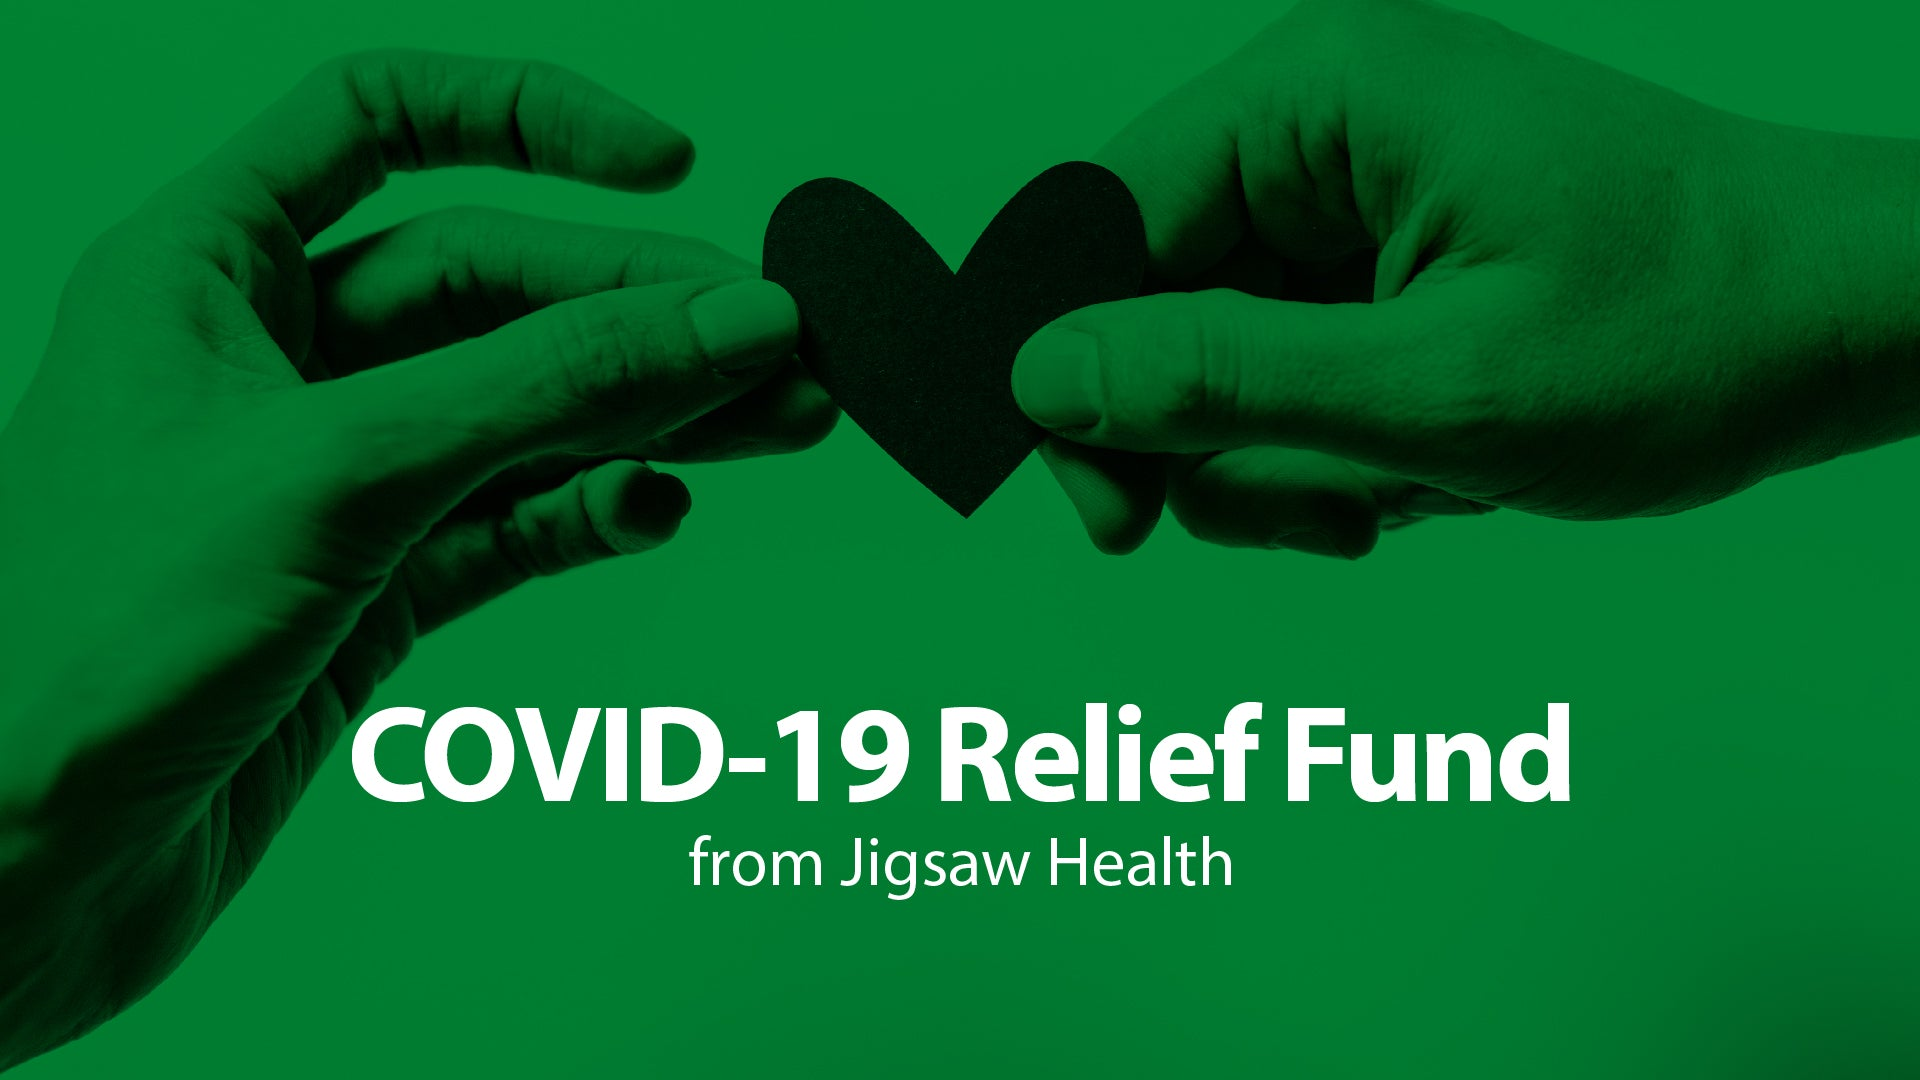 COVID-19 Relief Fund Announcement